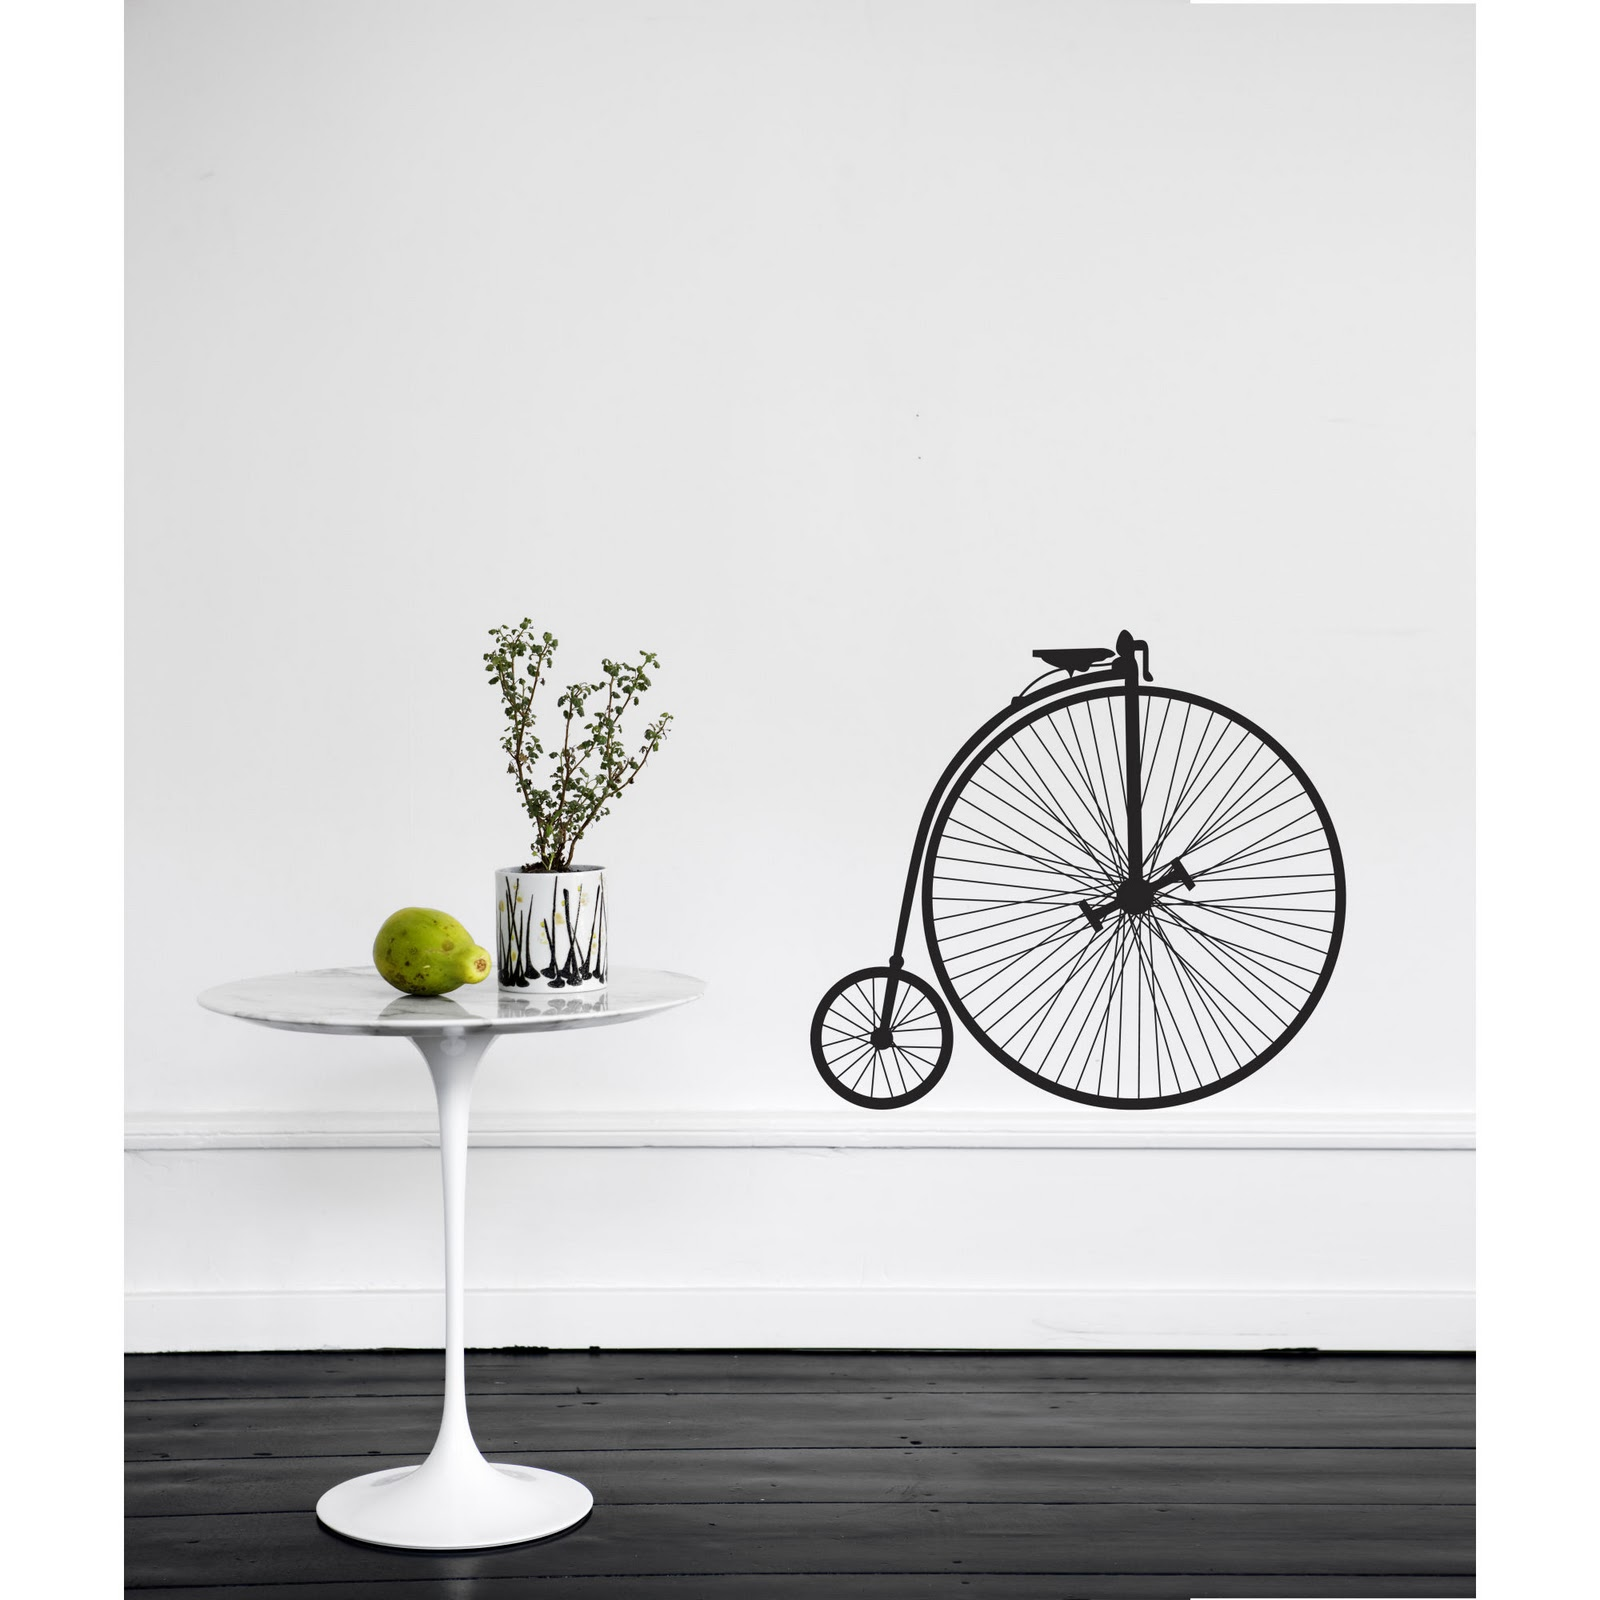 Bike-Wall-Sticker-Wallpaper-in-Room